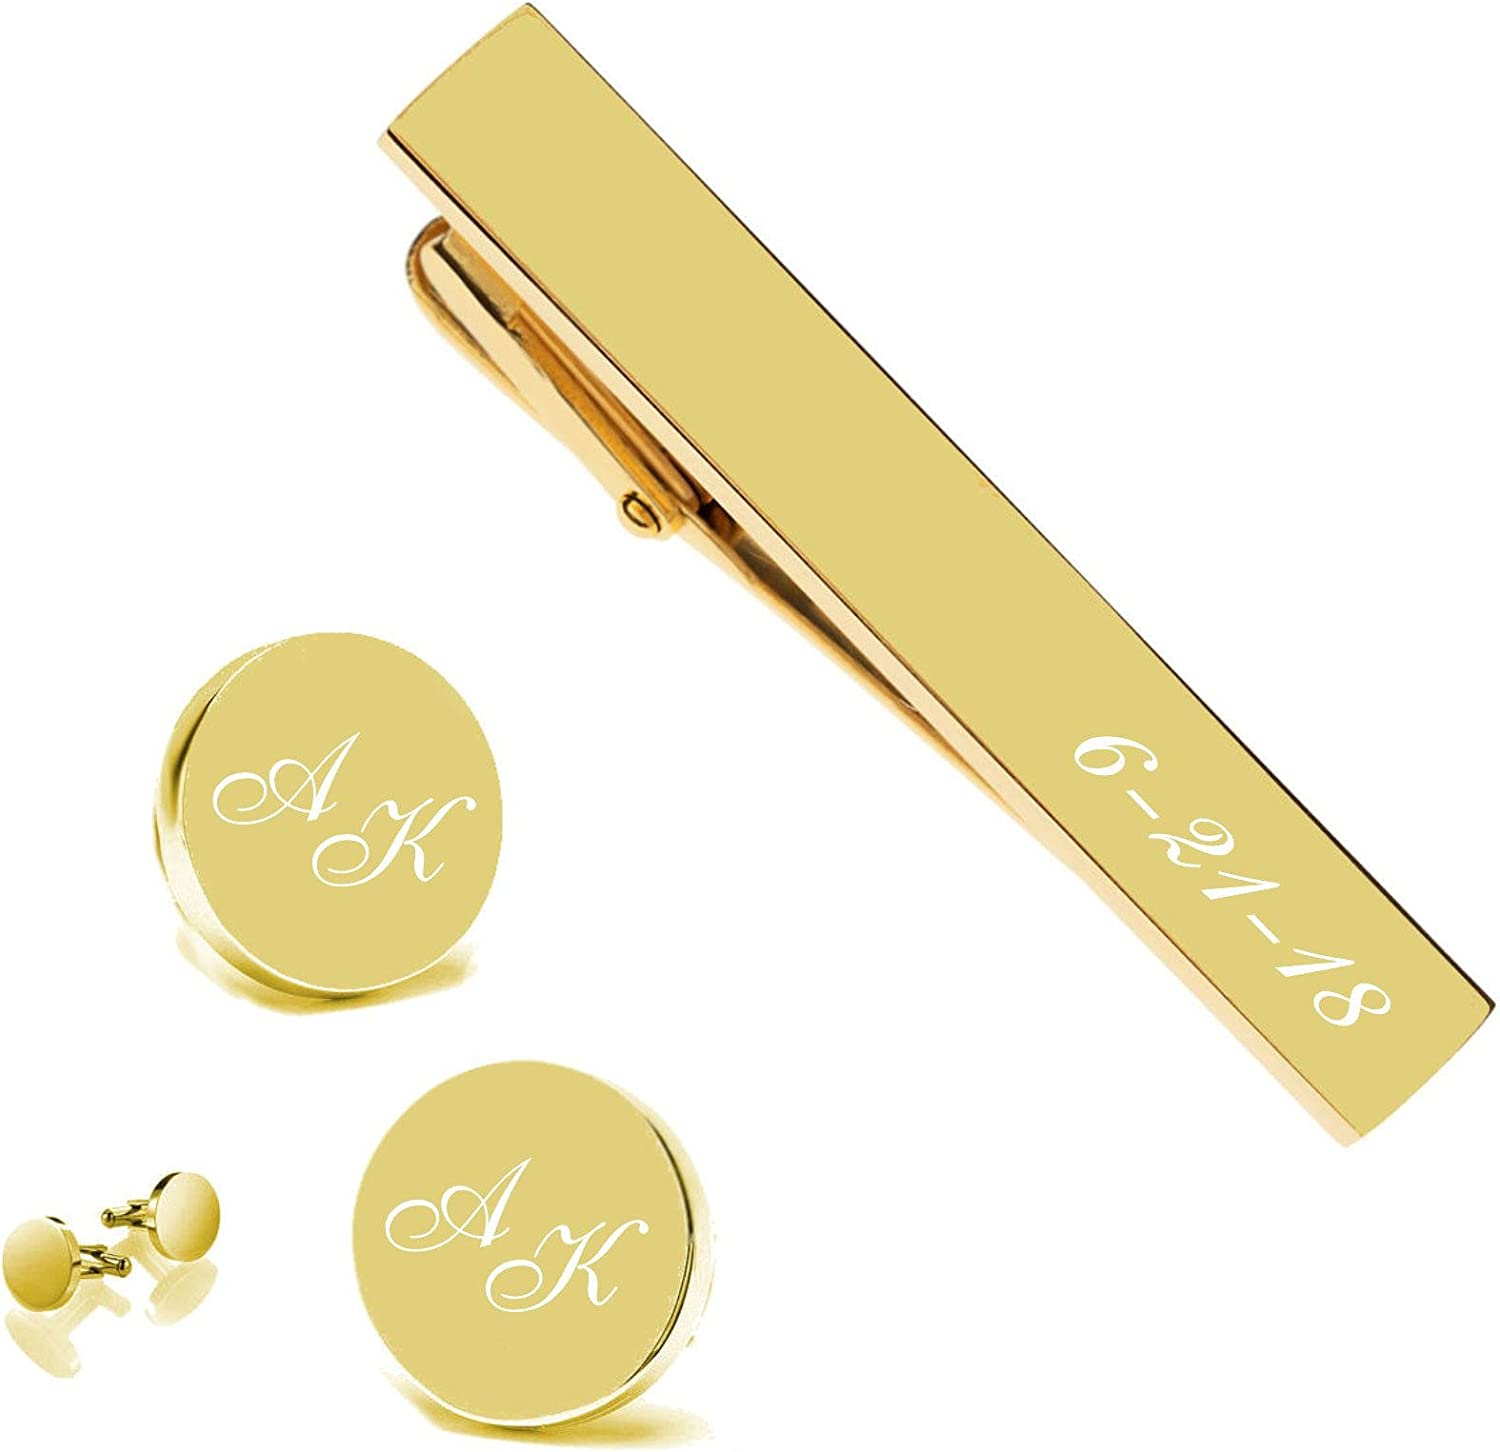 Personalized Gold Circle Cuff Links & Tie Clip Set Custom Engraved Free - Ships from USA